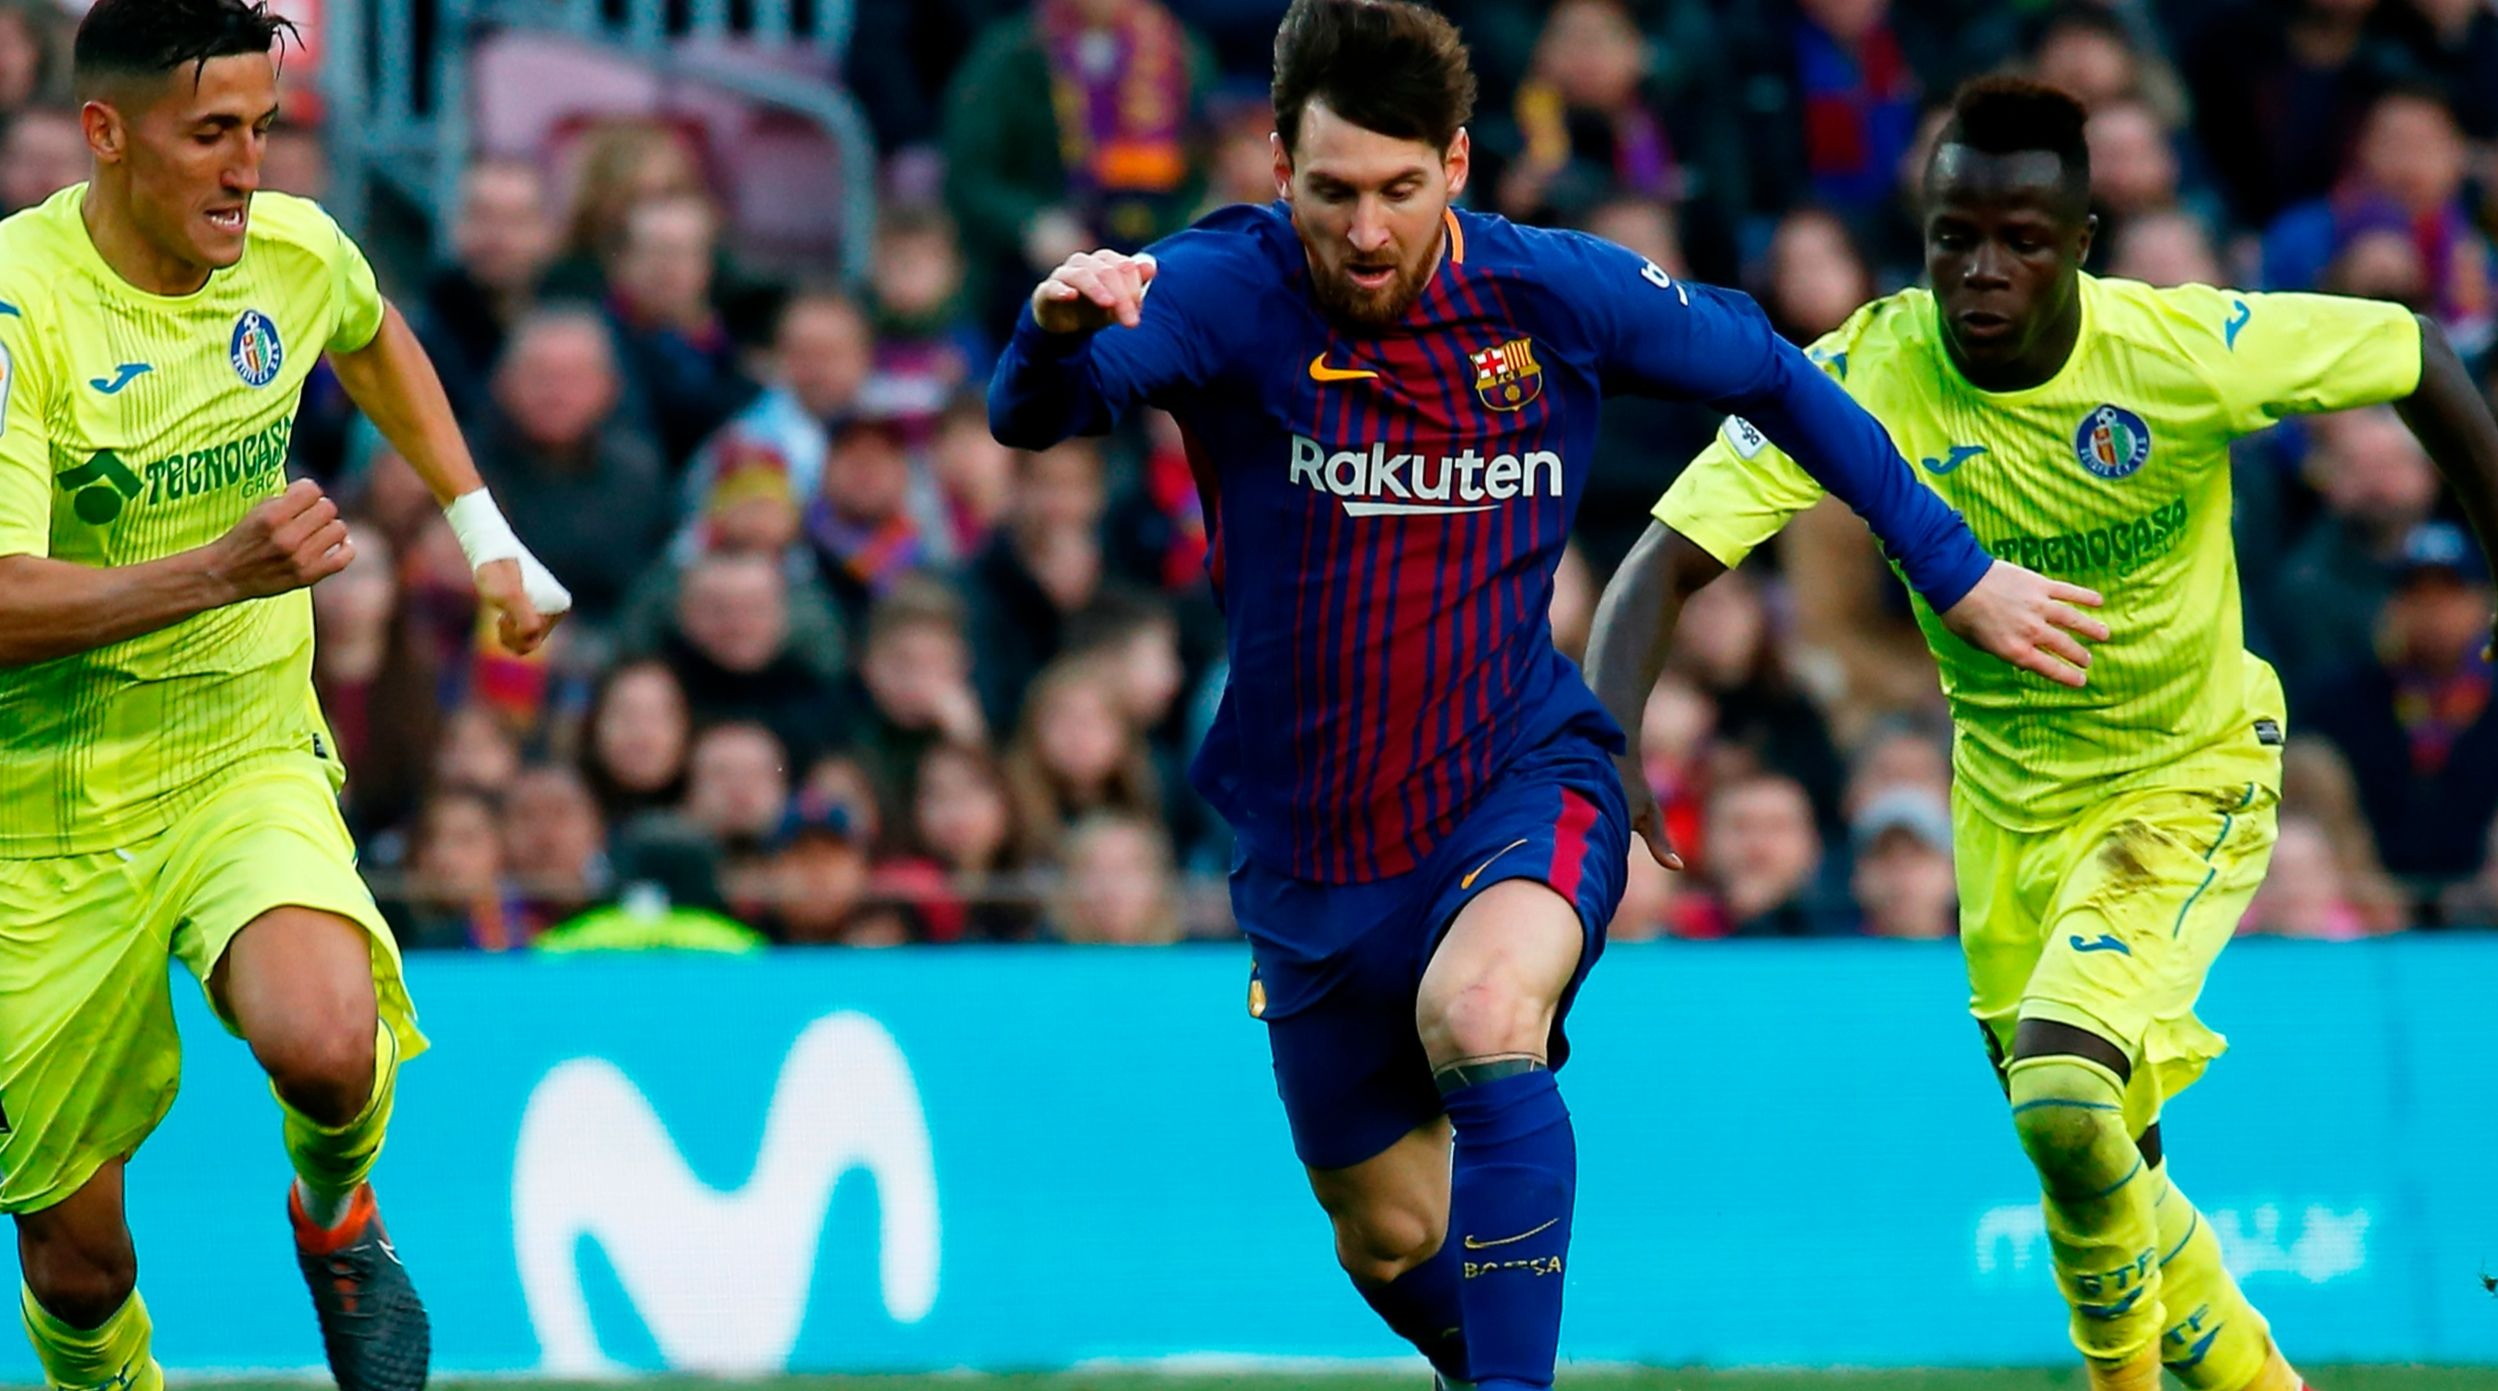 Chelsea vs Barcelona live stream: Watch online, TV channel, time | SI.com